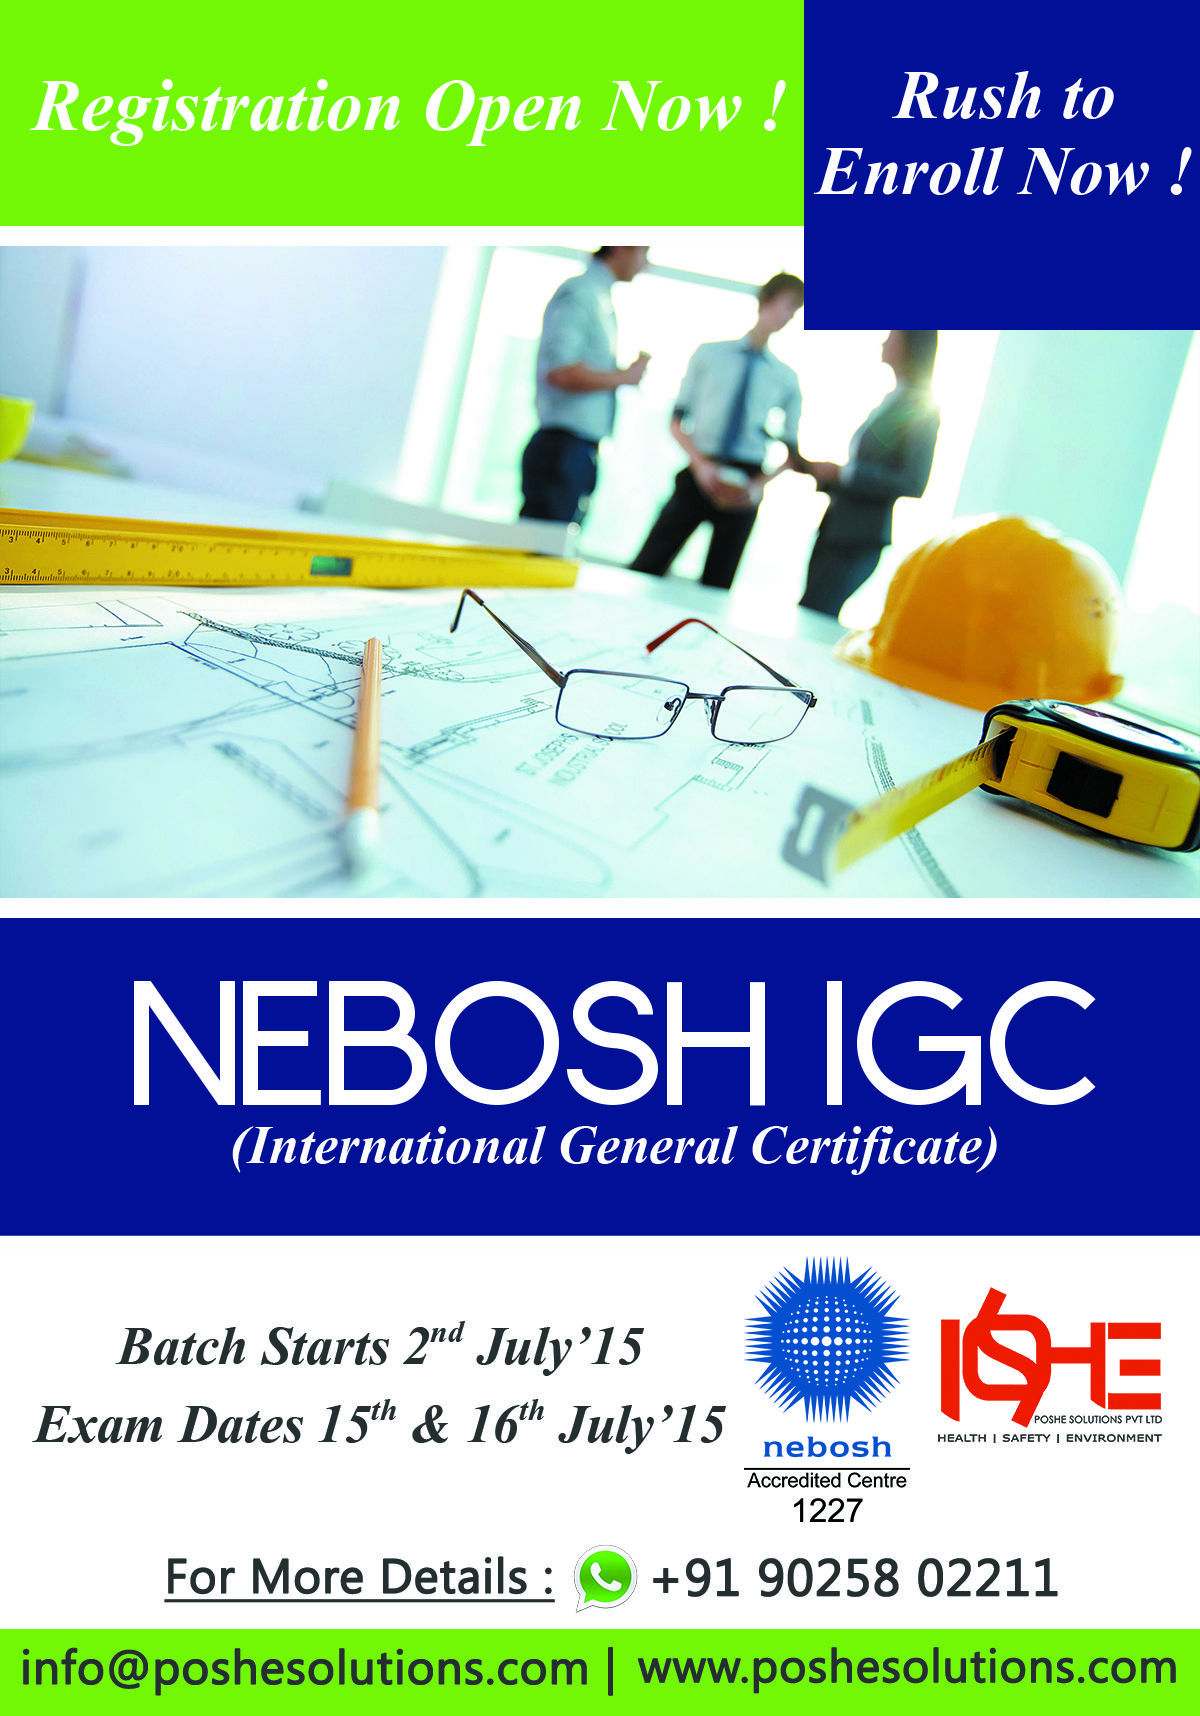 Exclusive Republic Day Offer Closing For NEBOSH IGC Across India Registration 27th January 2016 Hurry Call Today And Book Your